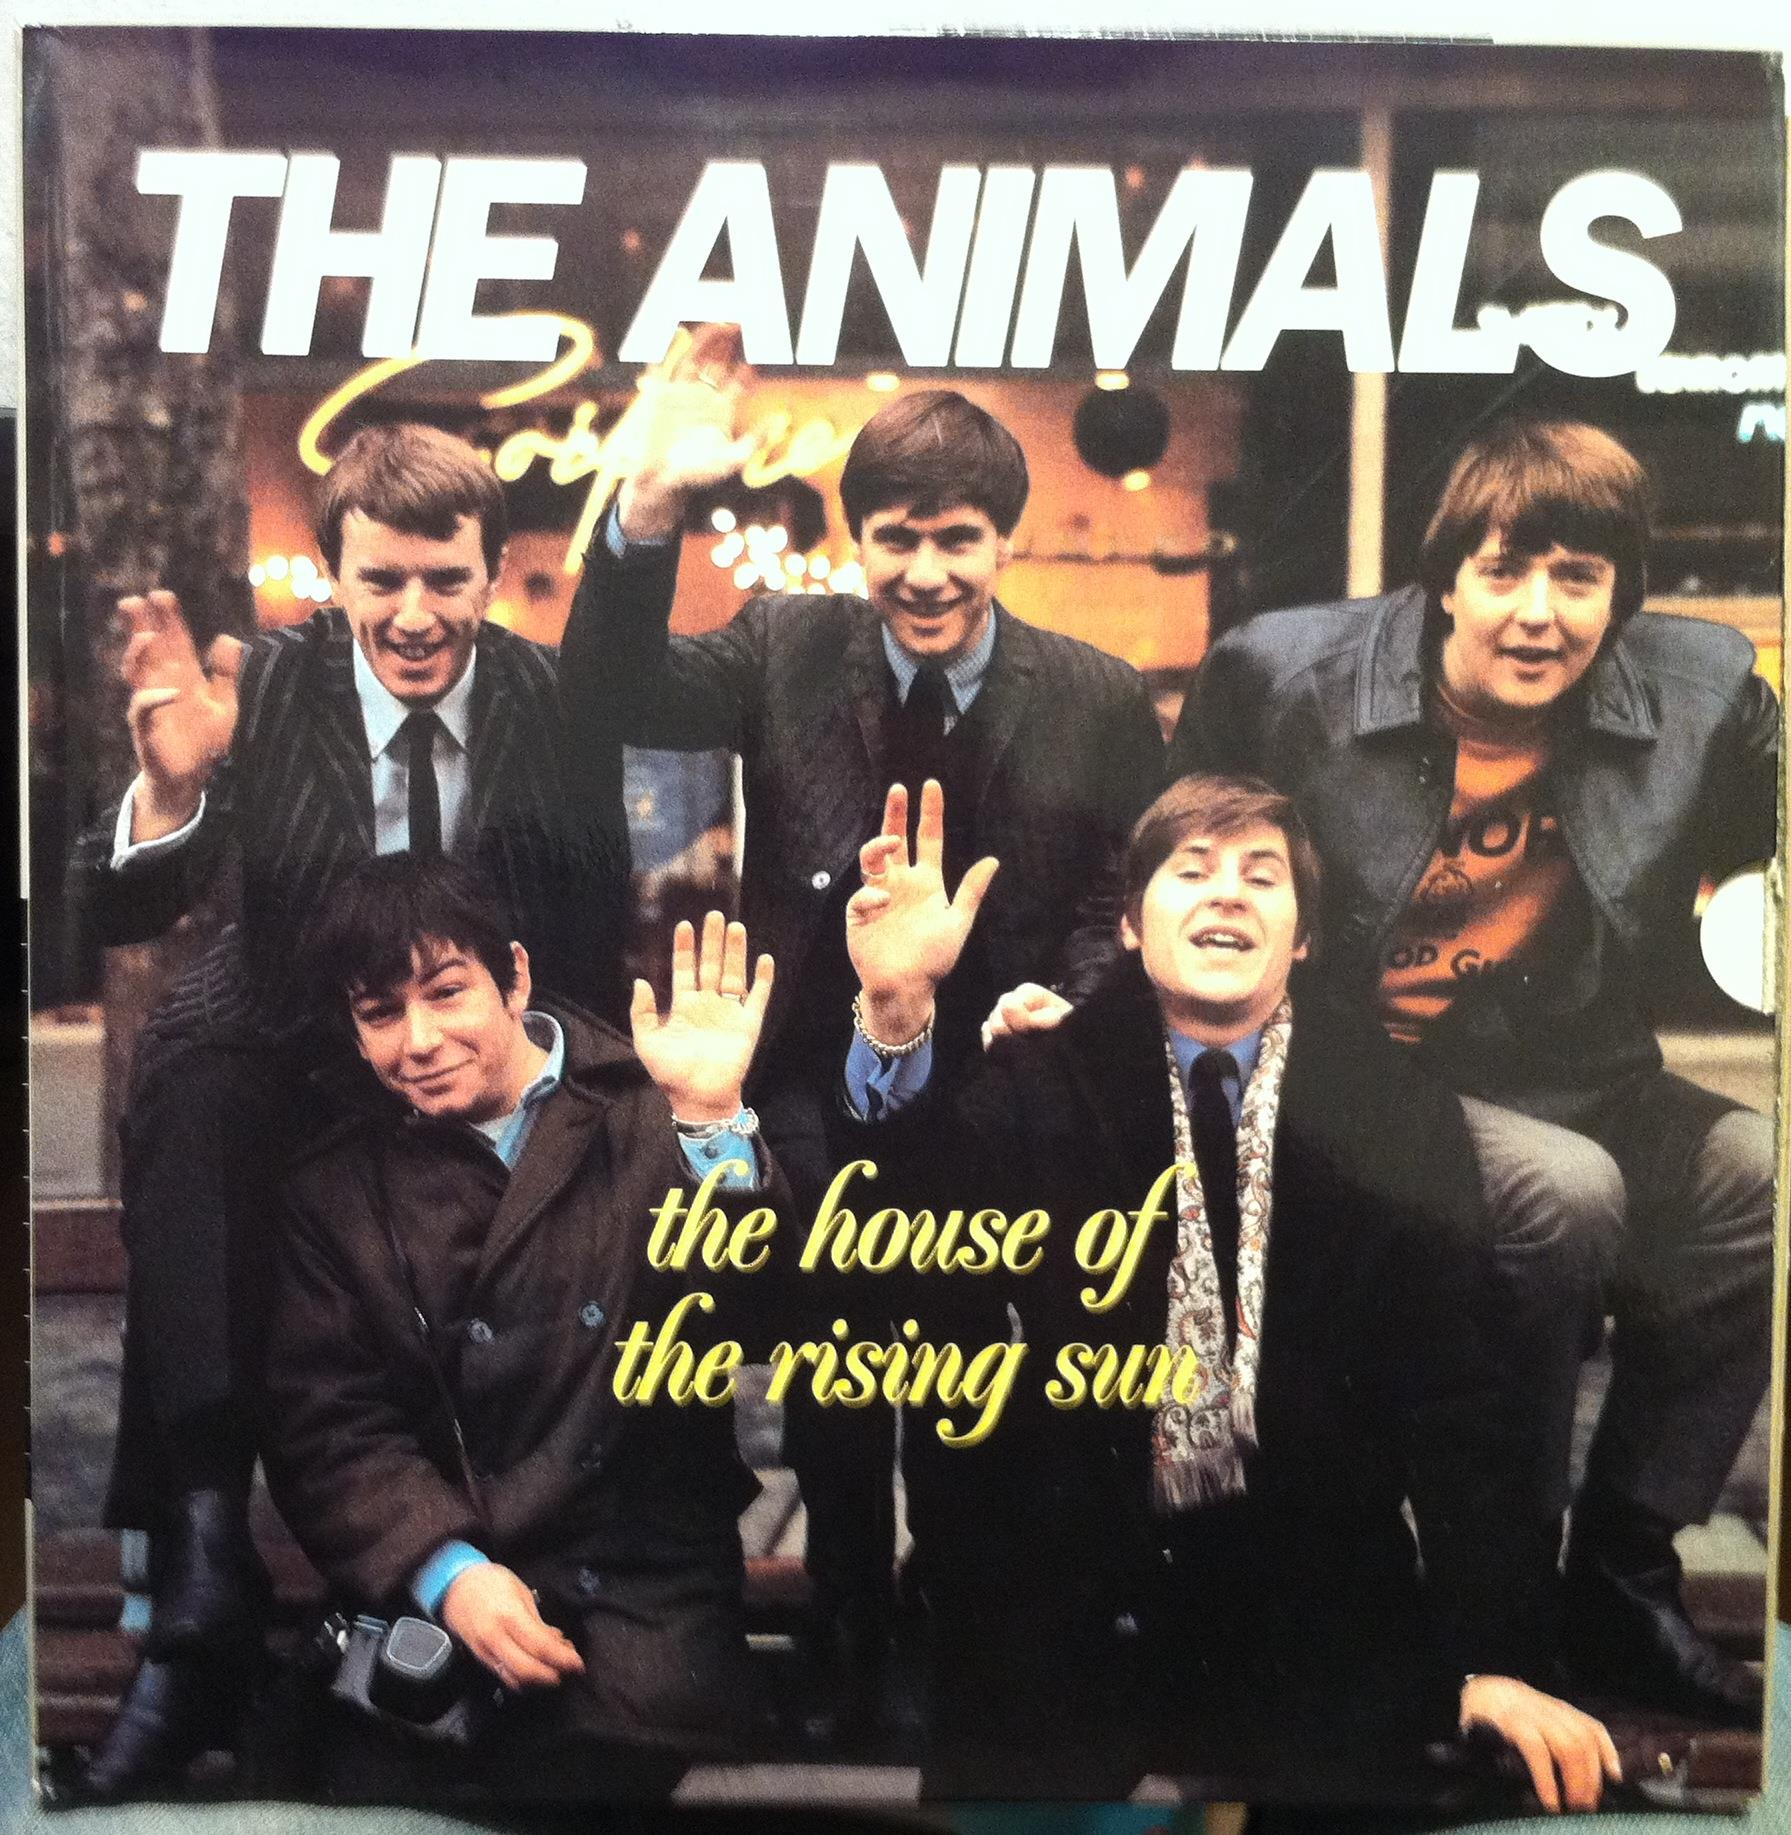 The animals house of the rising sun